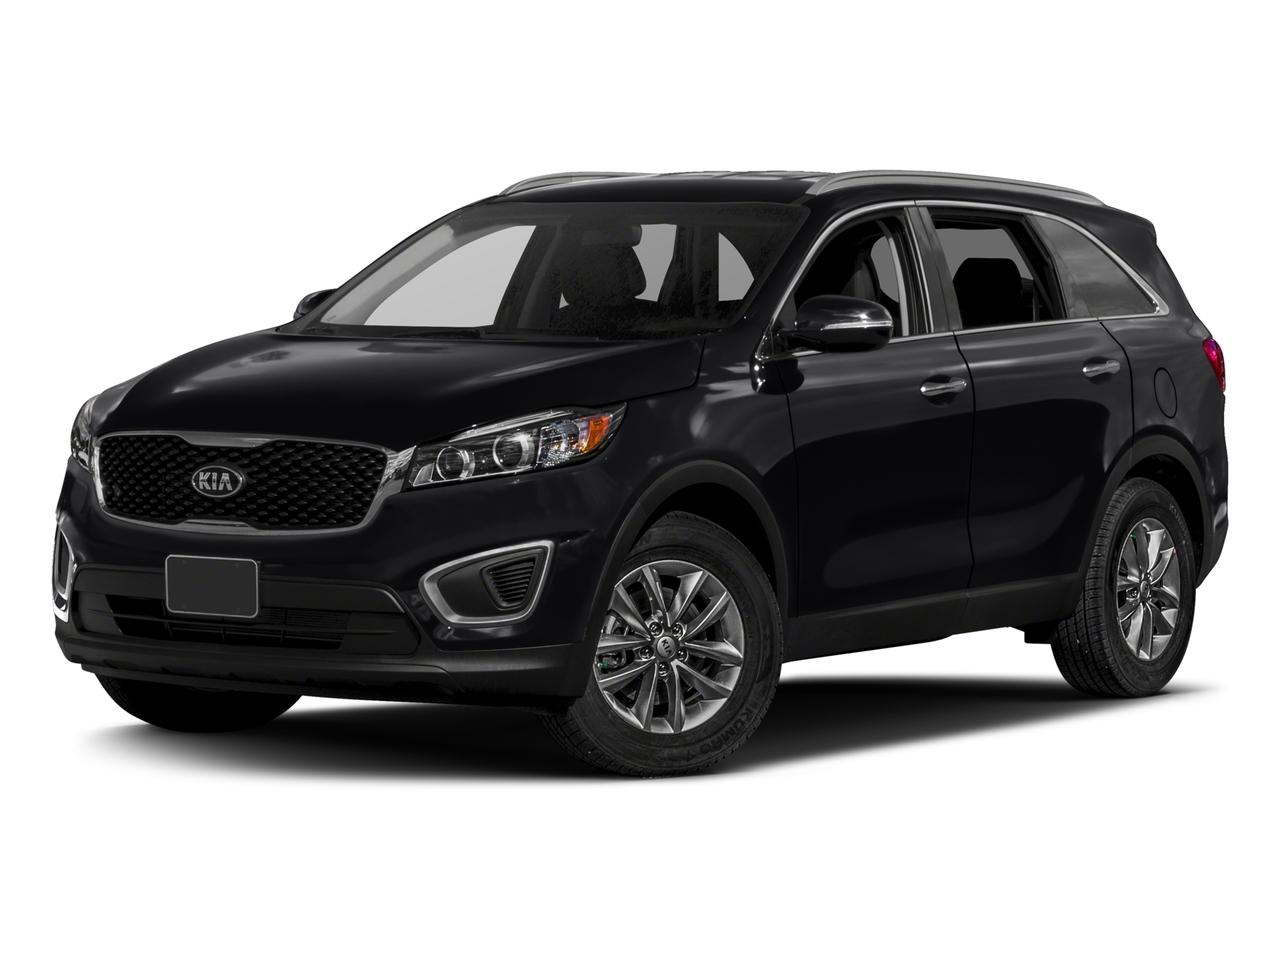 2017 Kia Sorento Vehicle Photo in OKLAHOMA CITY, OK 73131